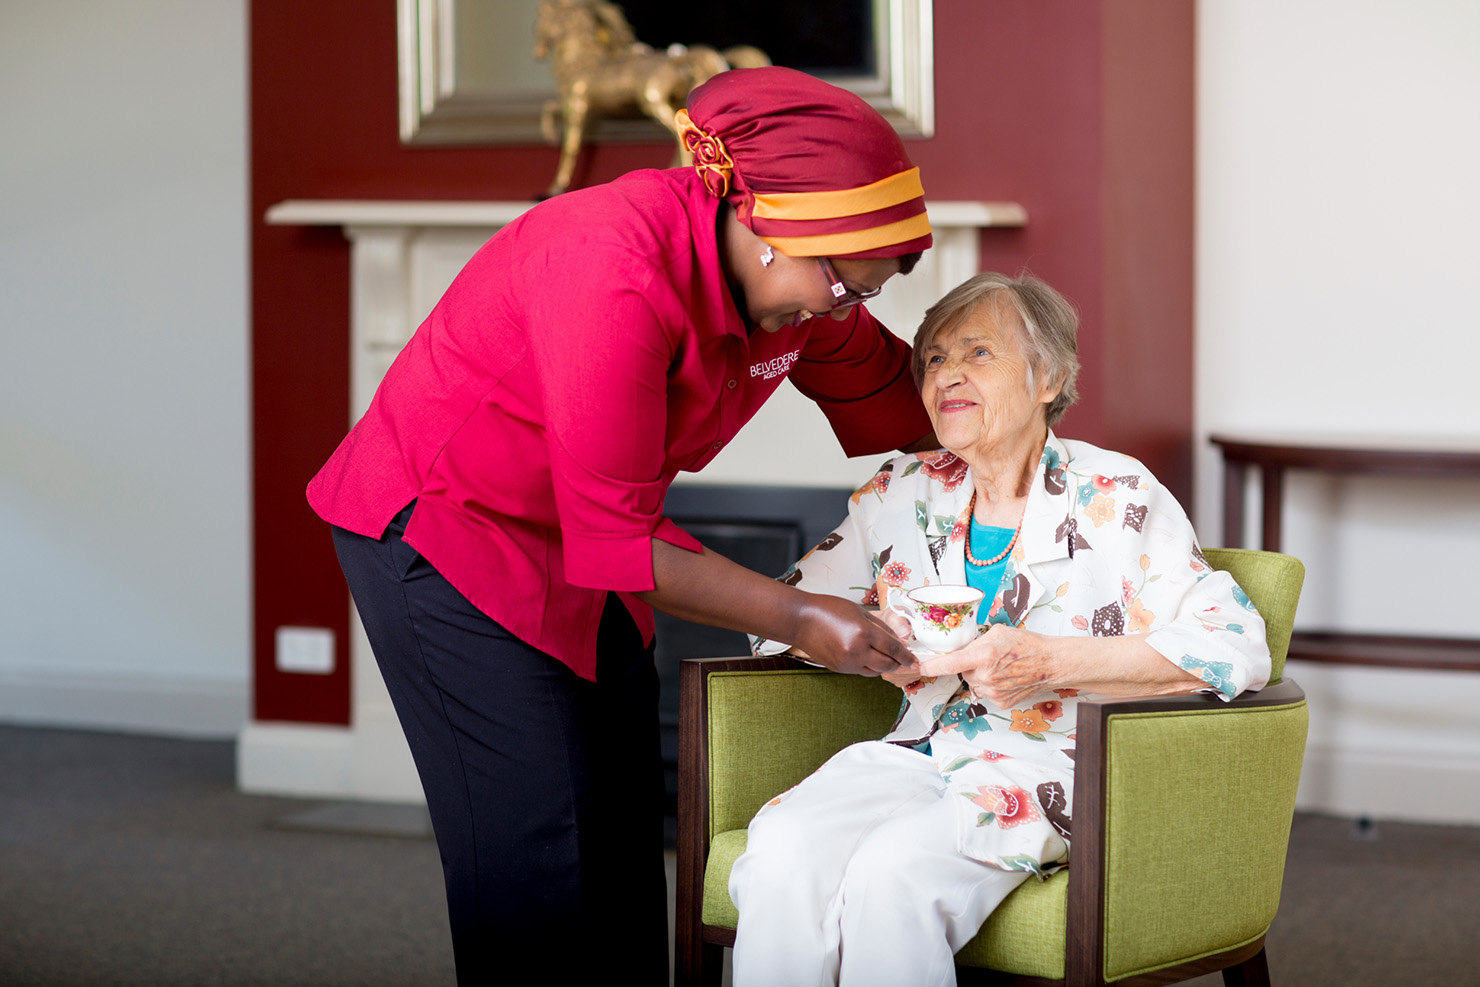 Aged care professional photography in Melbourne